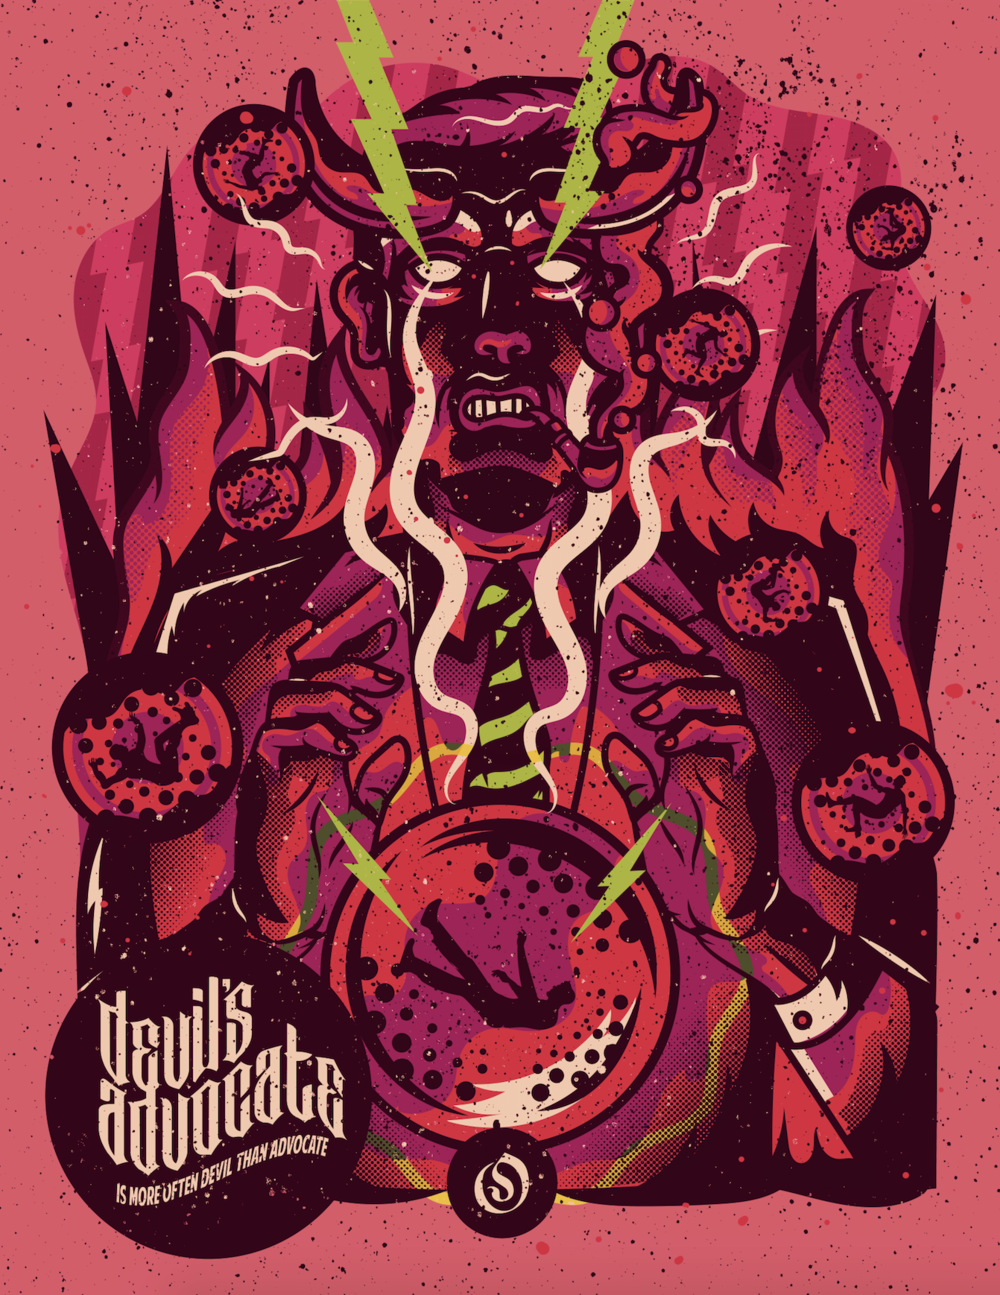 Devil's Advocate: Diego Portilla     https://www.behance.net/eslaquer    Diego Portilla is a Colombian illustrator who puts old movie poster and comic art into a bullet blender to serve up bright and creepy illustrations. His high-octane work is reminiscent of the golden age of poster art, and he's quite possibly ushering us into the renaissance of it all. In this poster for Odysseus Arms Diego portrays We wanted to embolden creatives and encourage them to just go and make the thing. Paint the stuff. Write that doohickey. Because if you listen to the worriers of the world, you'll never make anything cool.